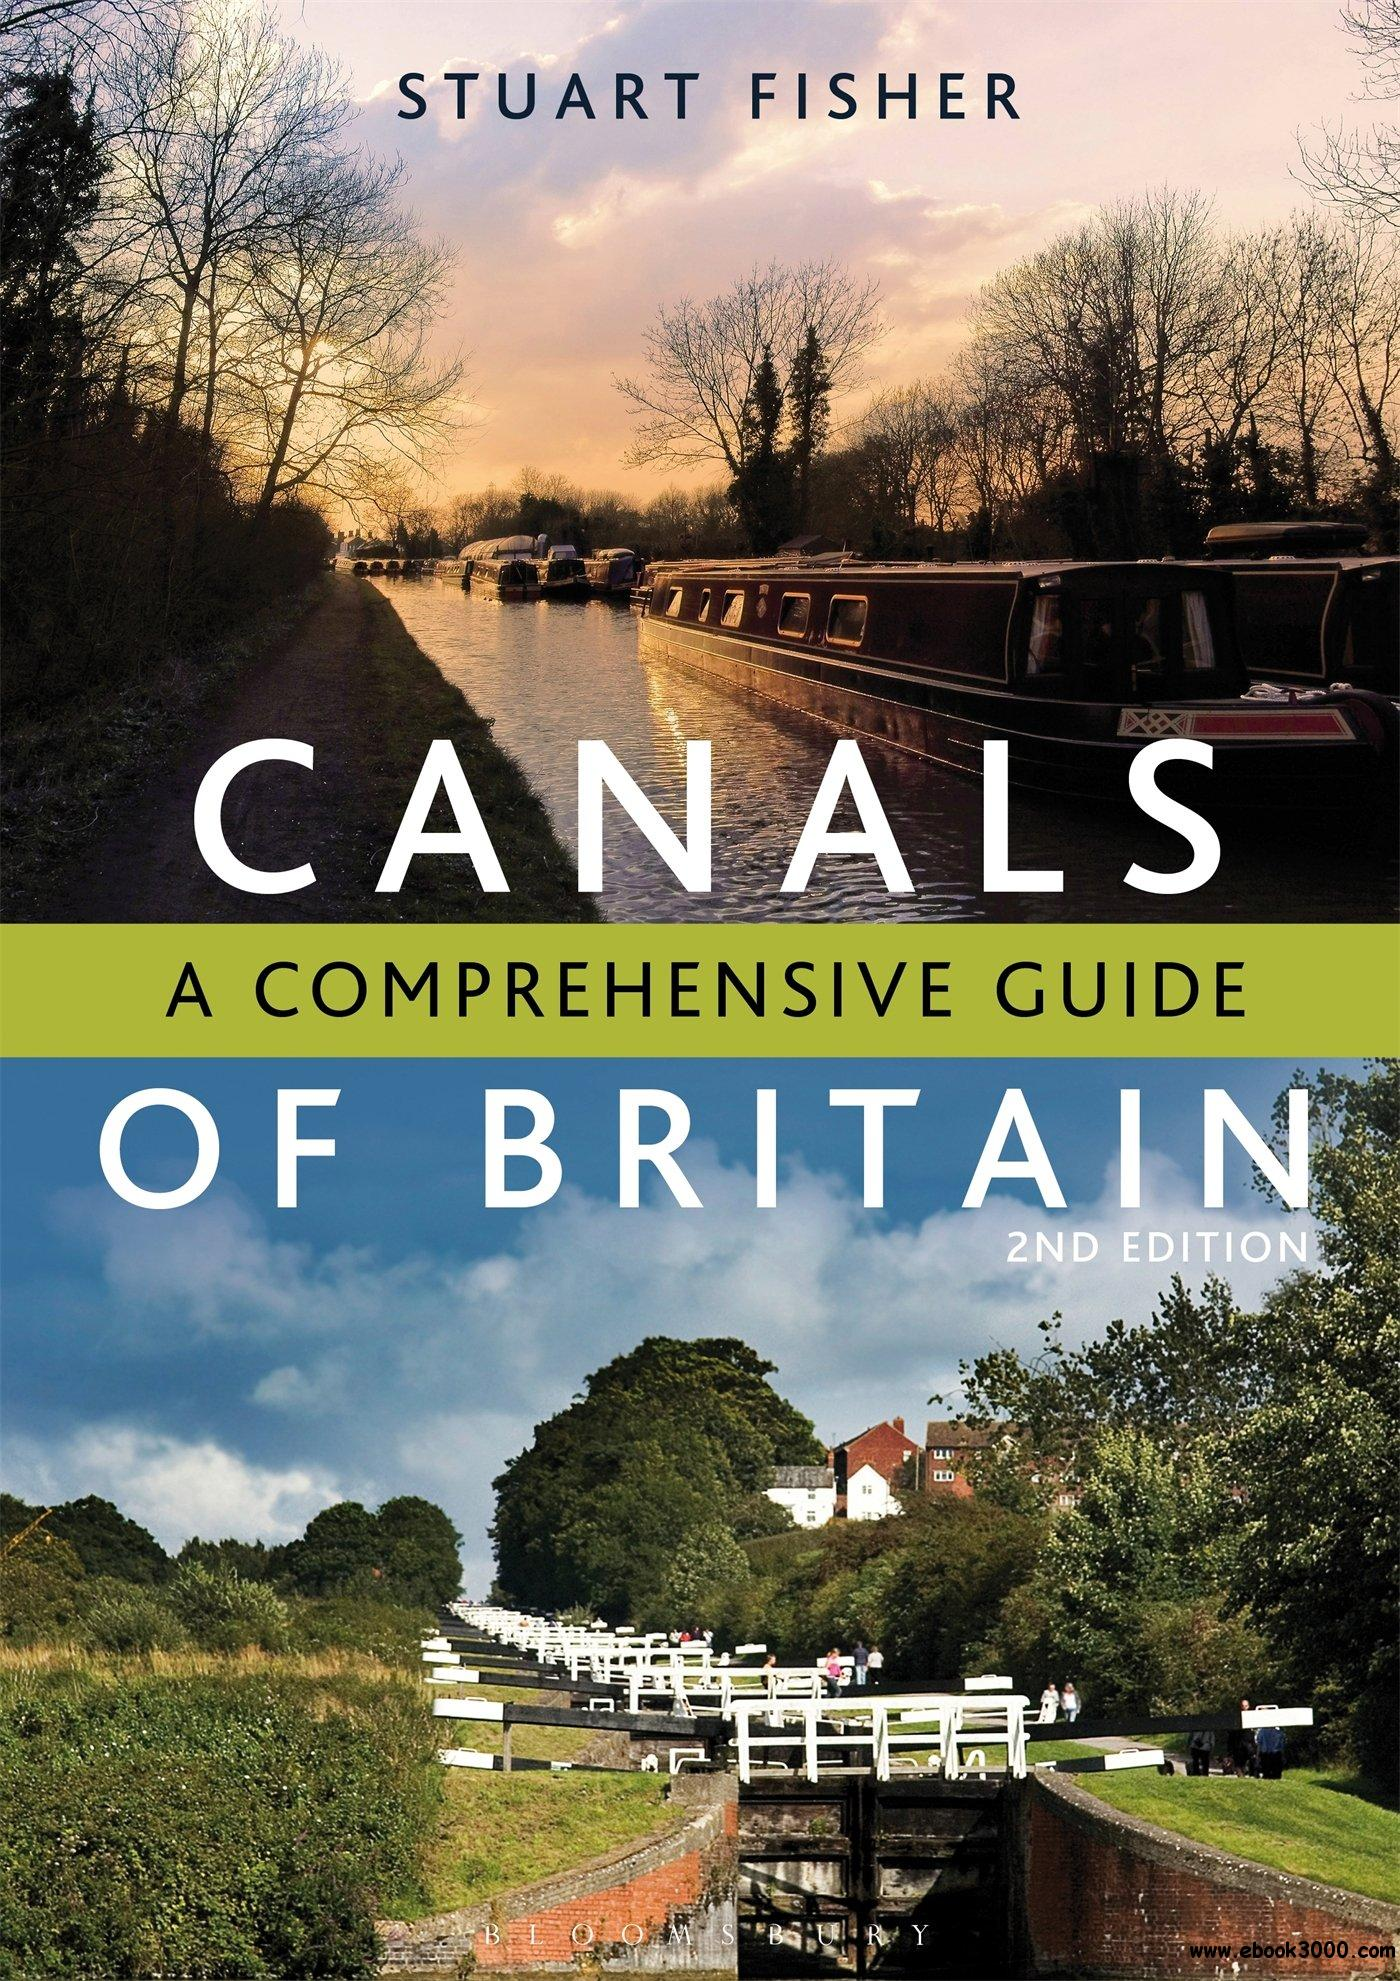 The Canals of Britain: A Comprehensive Guide